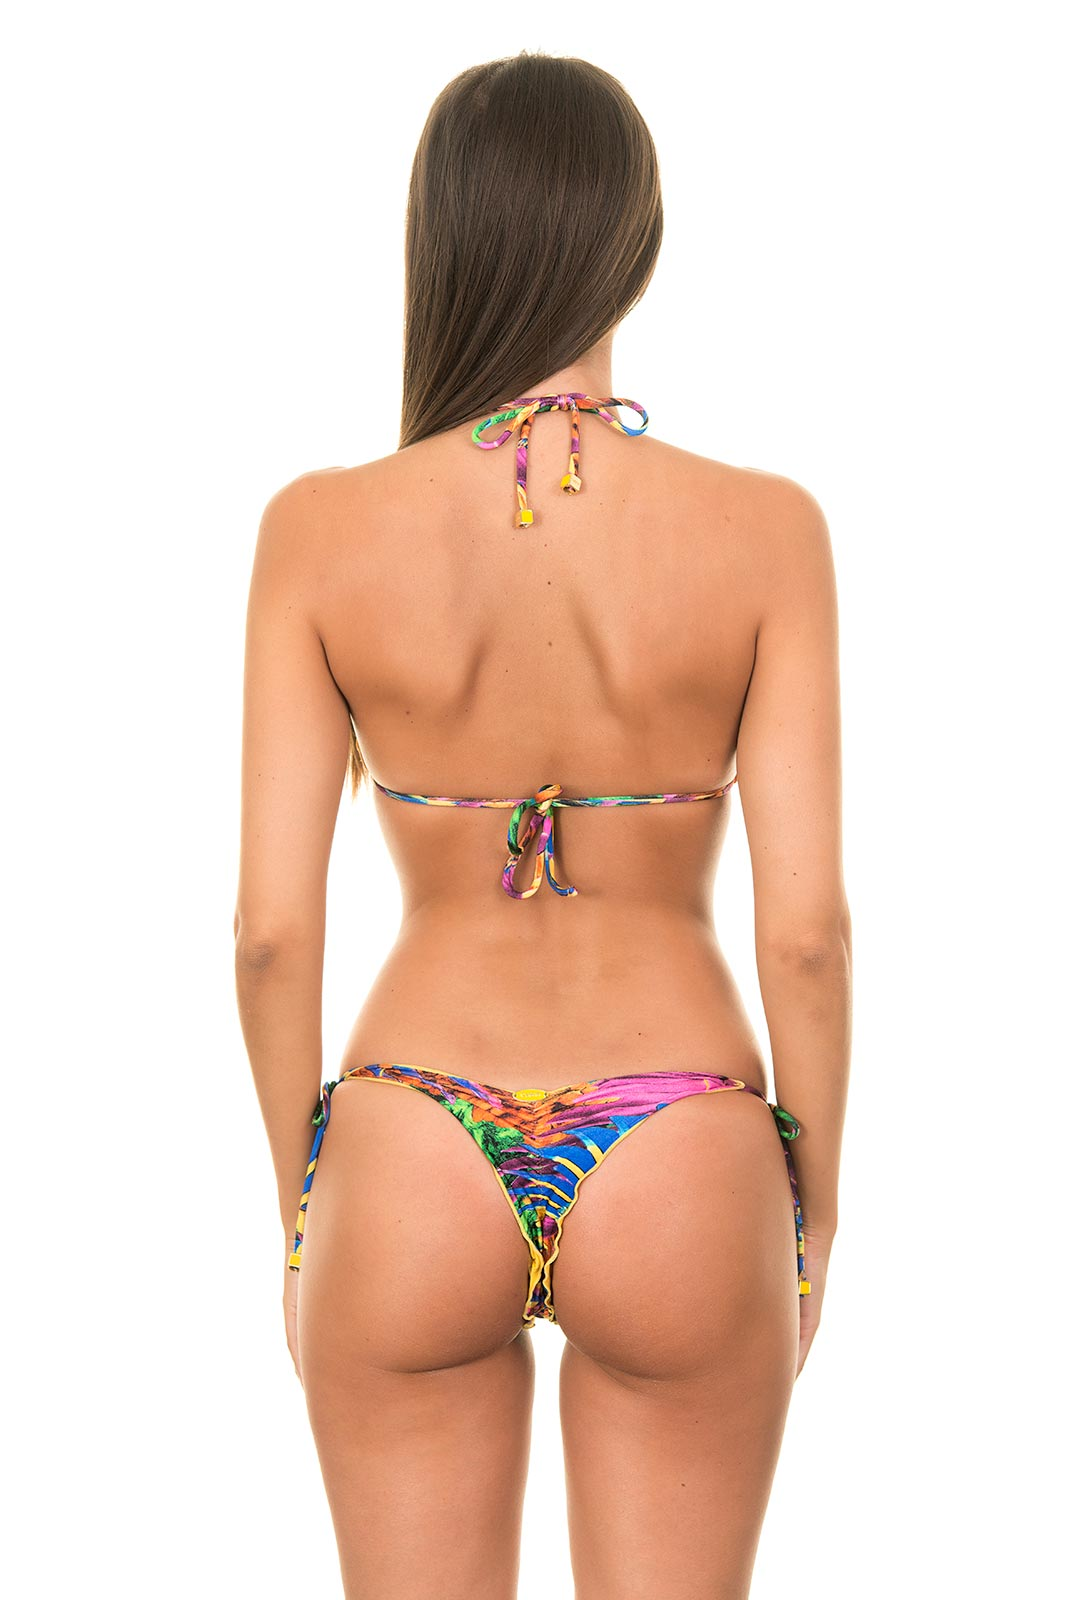 eDealMax Femmes Lady Halter Push-up Soutien-Gorge rembourré, Triangle Top Bikini Shop Best Sellers· Deals of the Day· Fast Shipping· Read Ratings & ReviewsBrands: Dolce Vita, Freya and more.